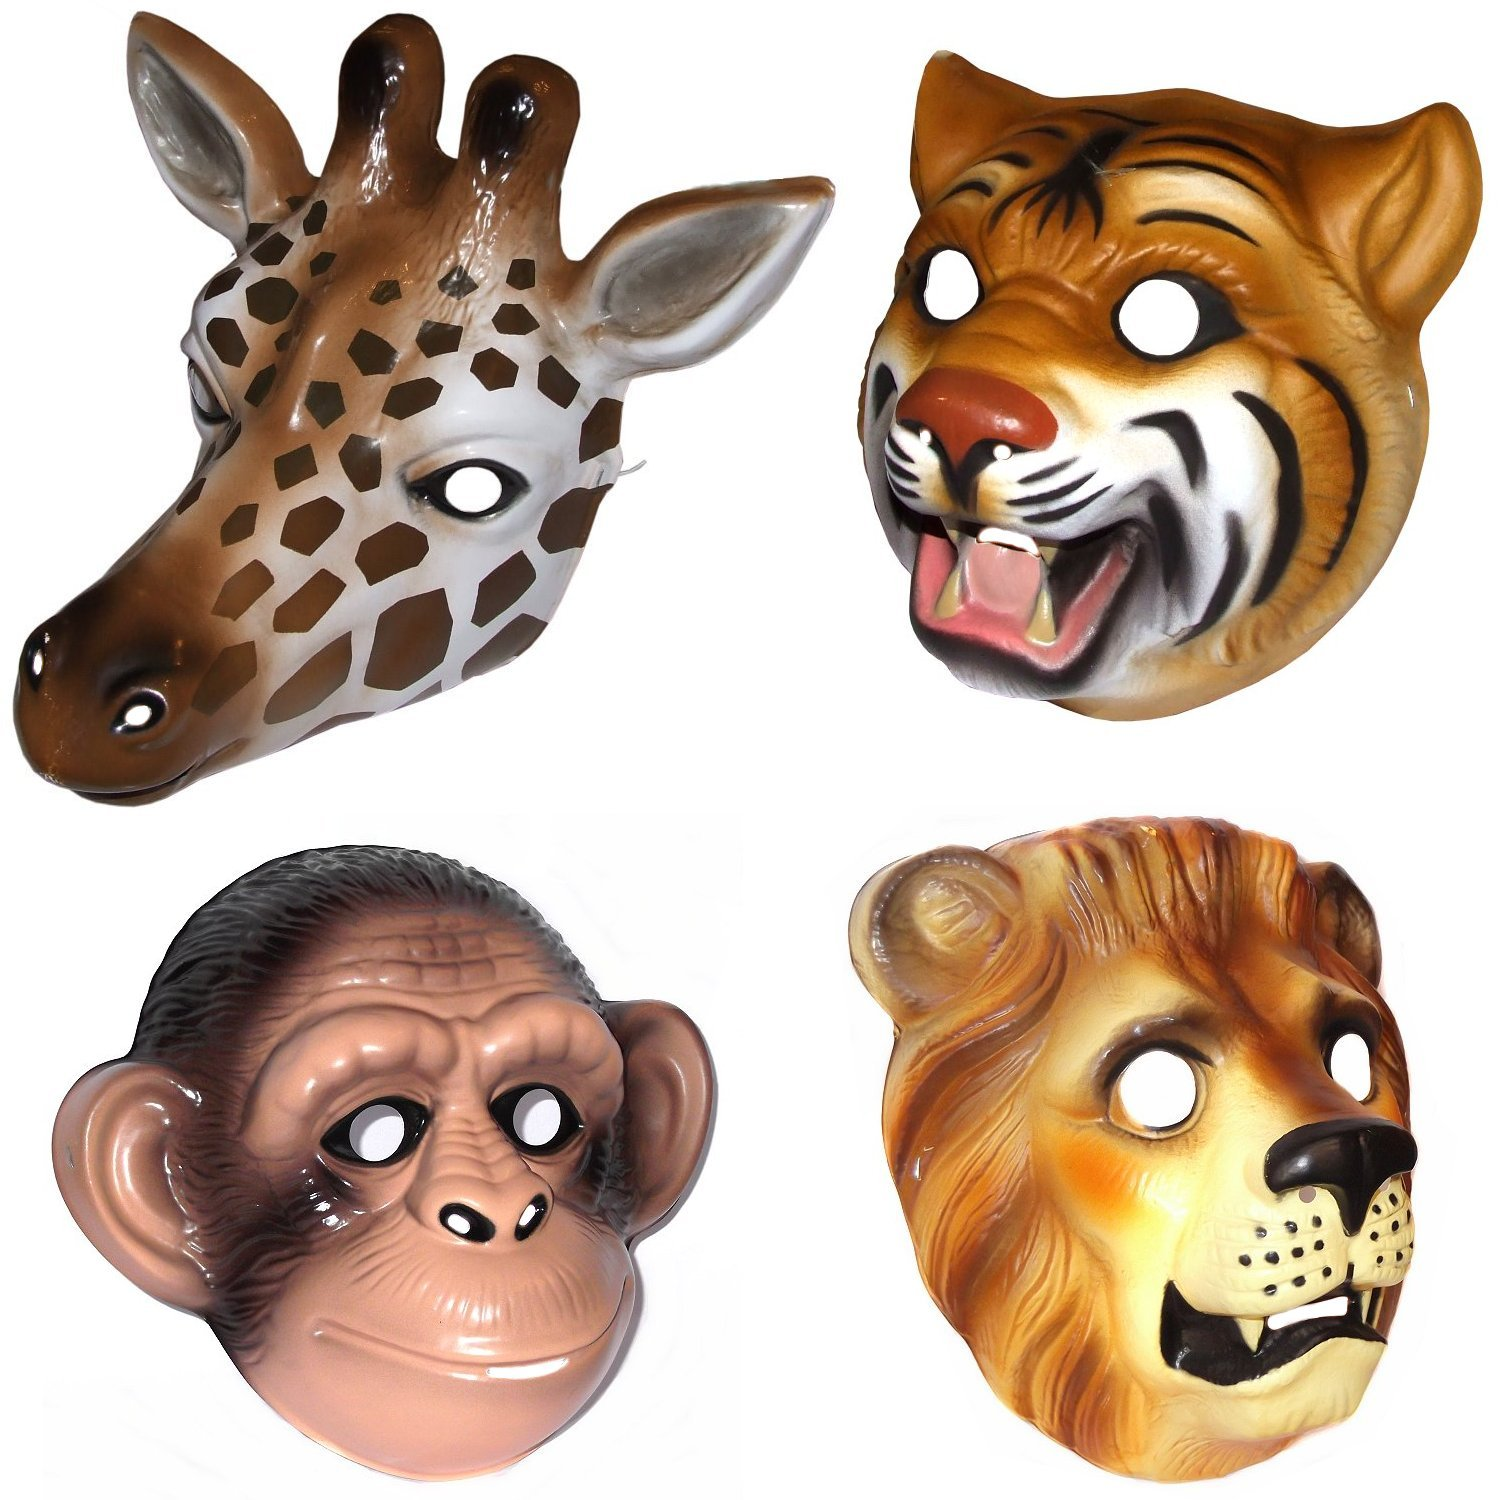 4 plastic jungle safari animal face masks giraffe chimp lion